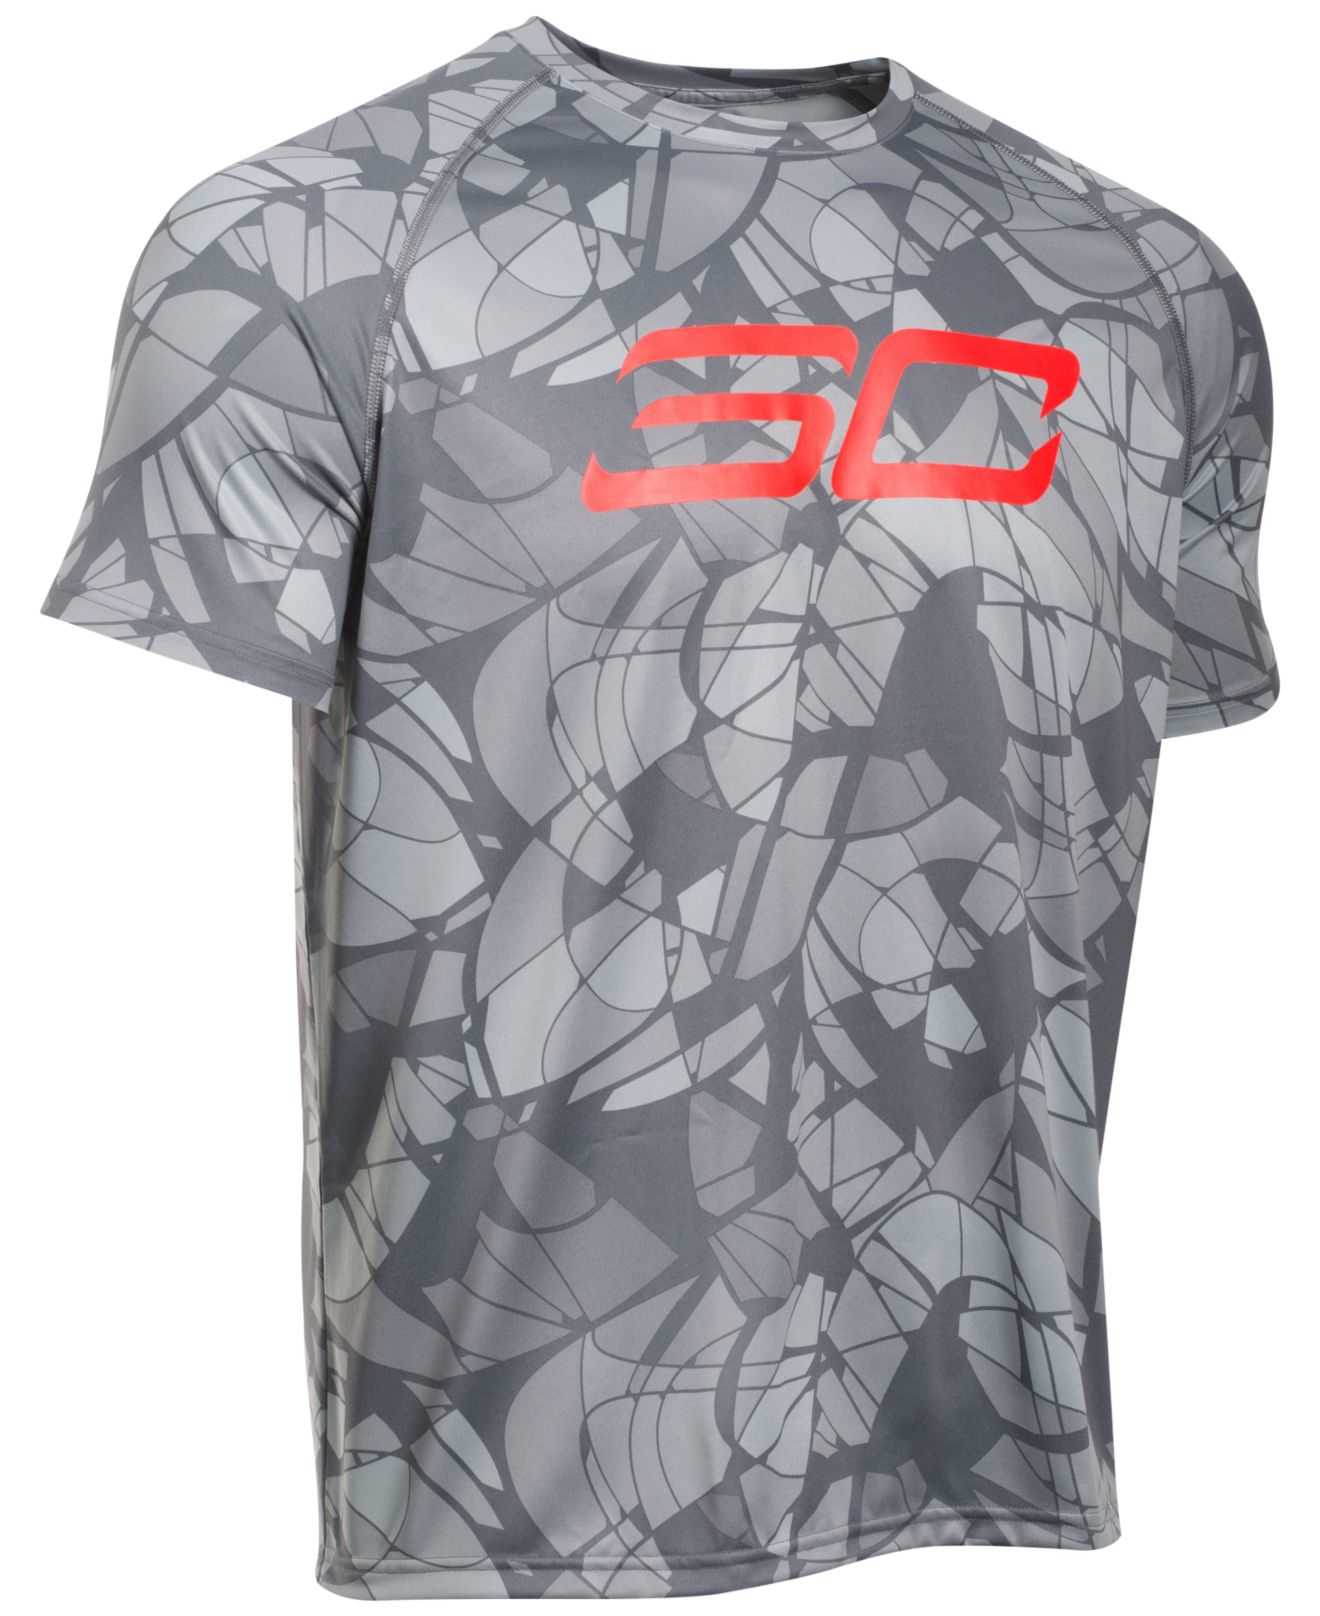 Under armour men 39 s ua tech printed t shirt in gray for men for Under armour printed t shirts